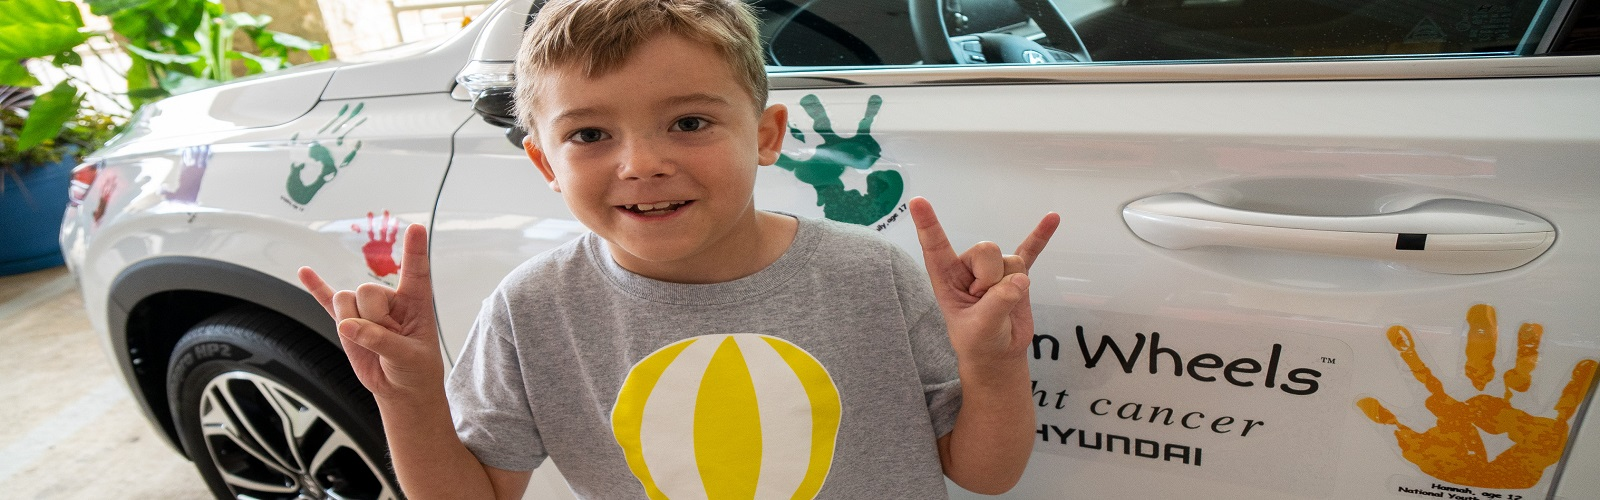 young child near Hyundai Hope on Wheels vehicle with painted handprints